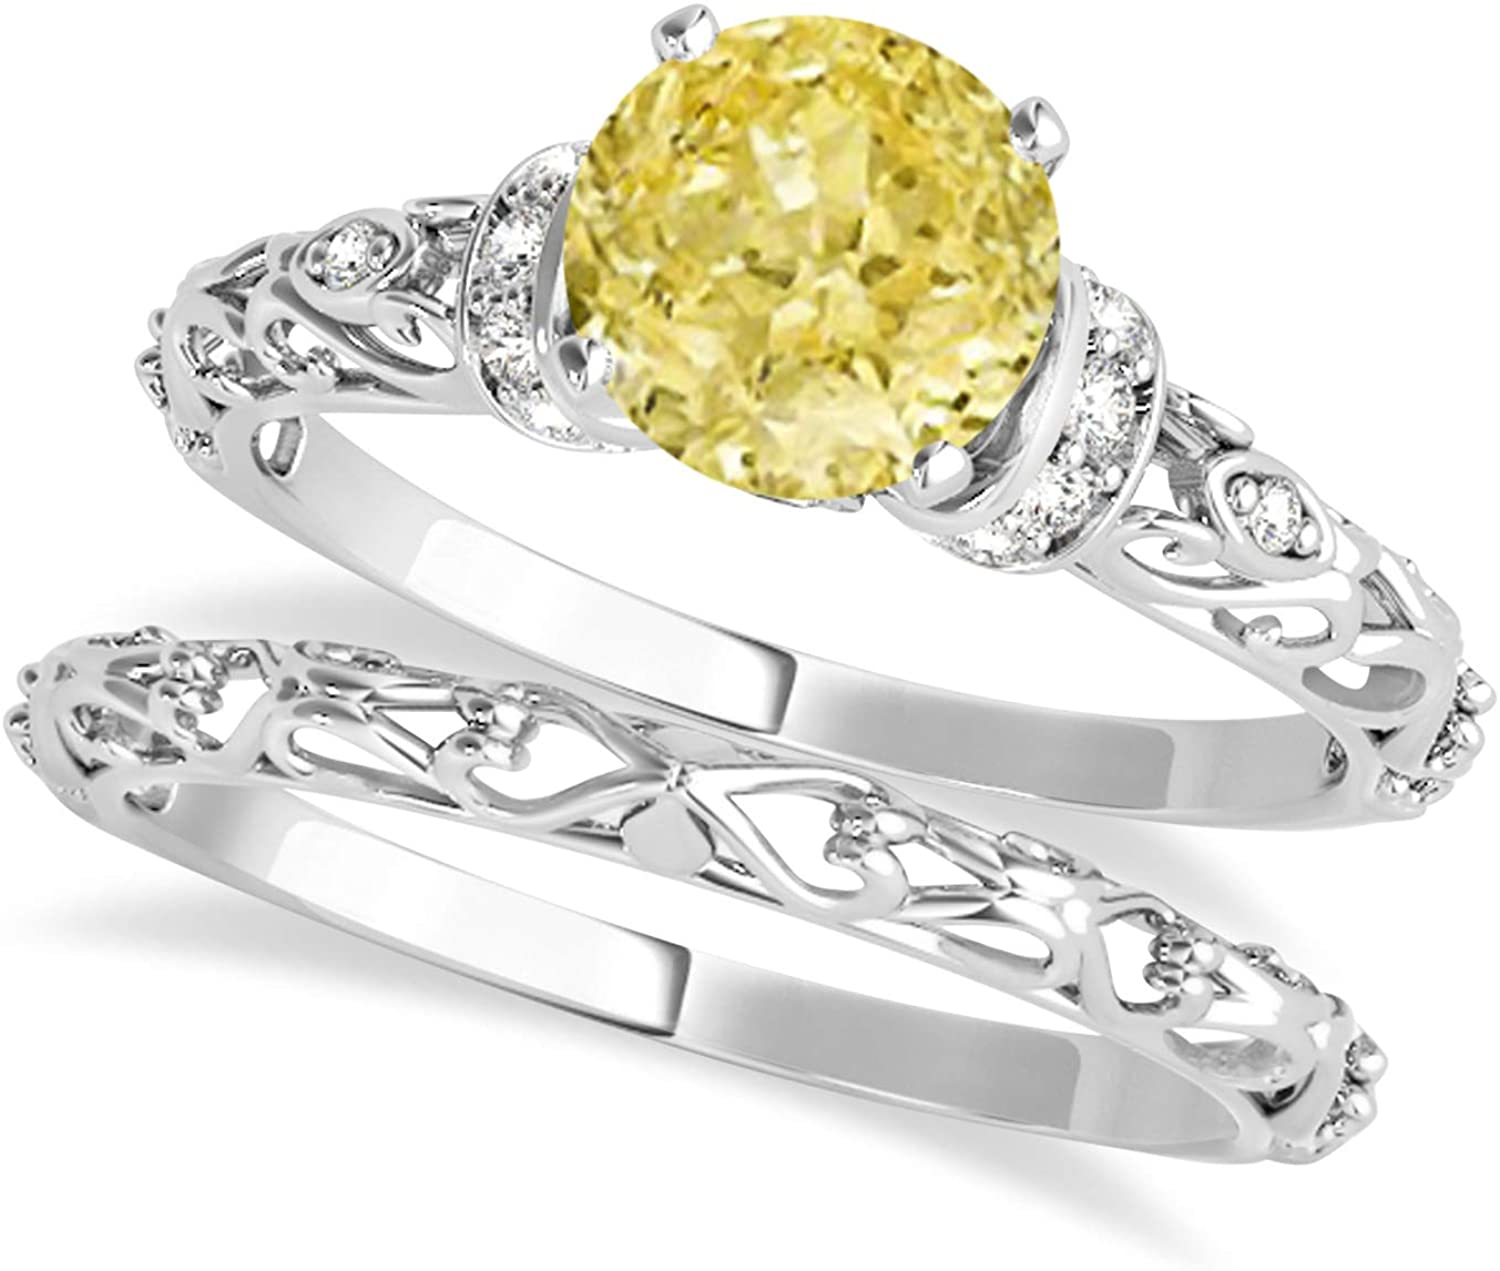 (1.12ct) Palladium Yellow Diamond and Diamond Antique-Style Bridal Set